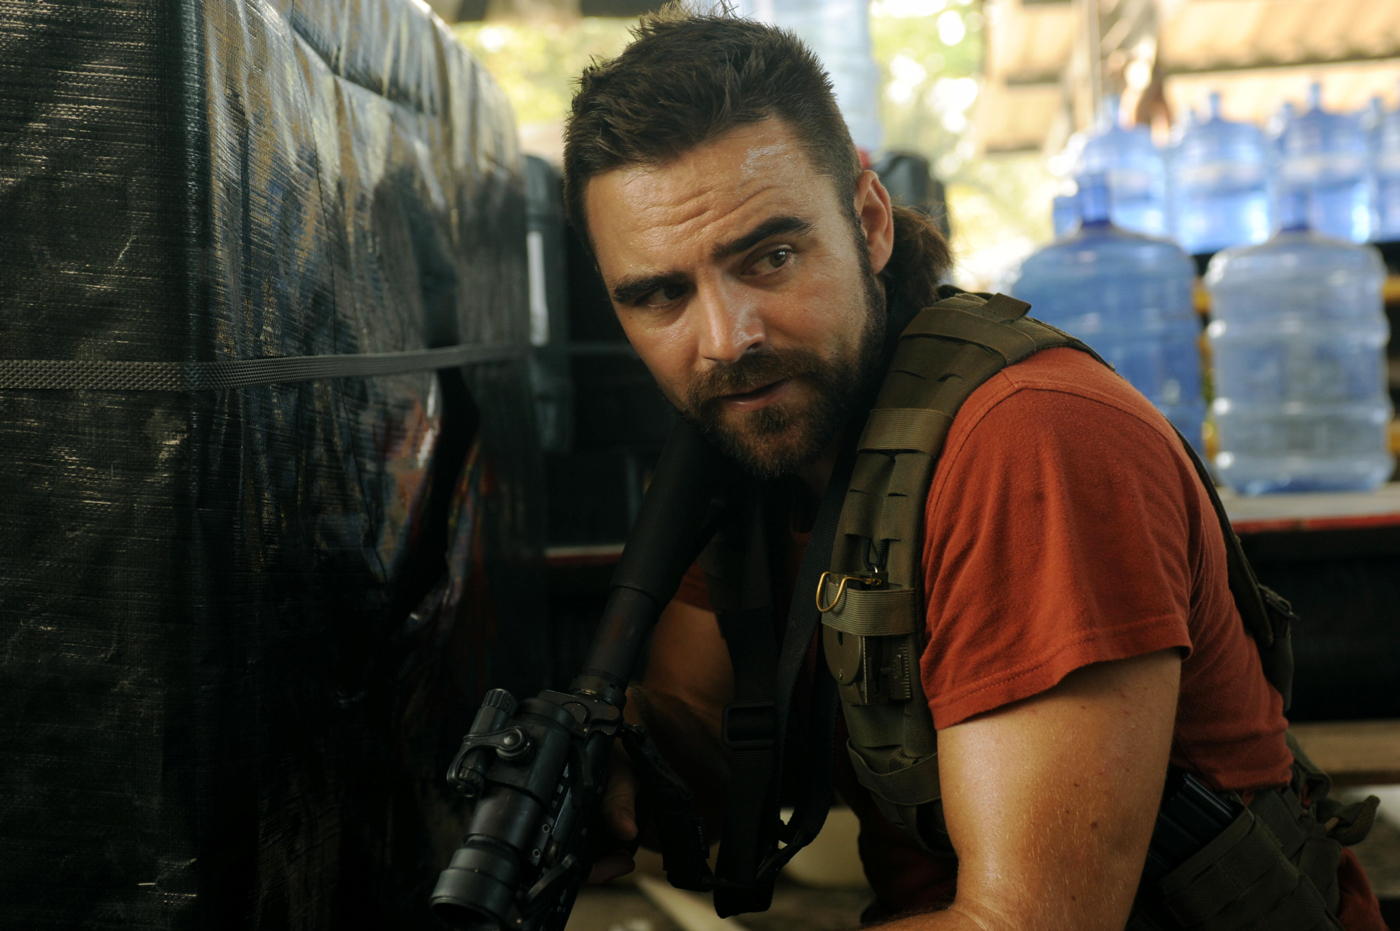 Dustin clare on strike back the man under the mullet tv show